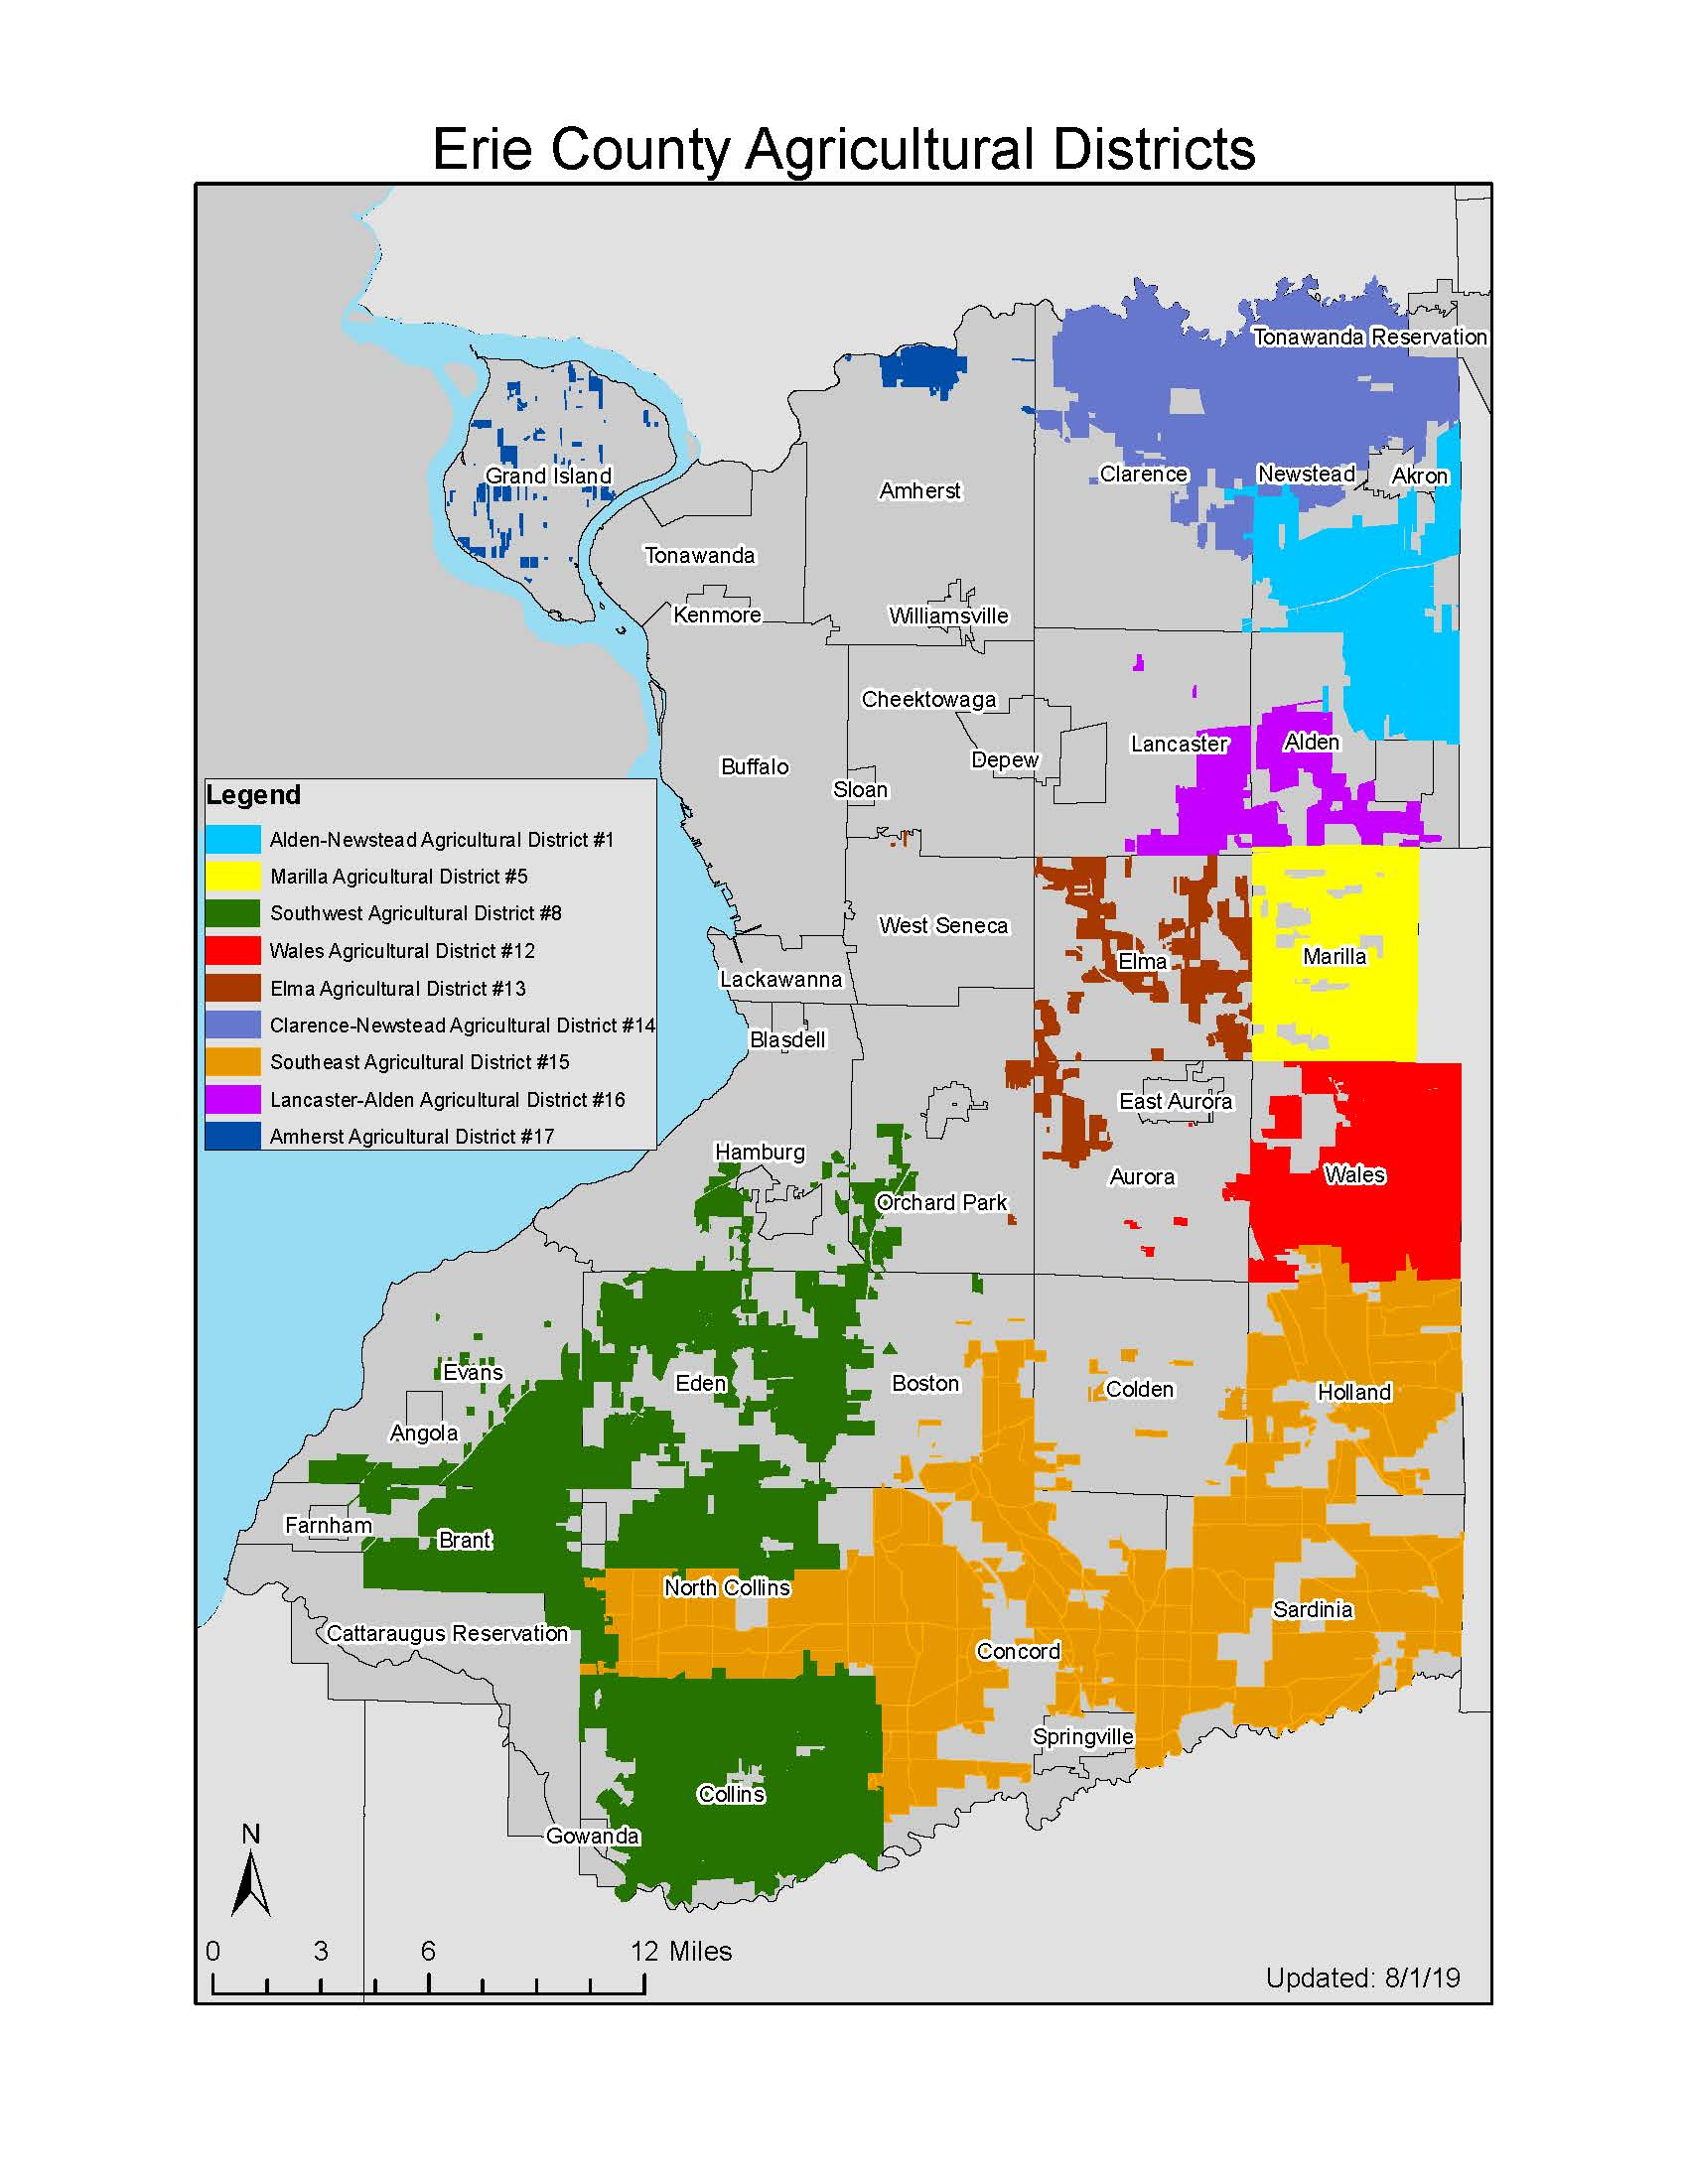 Map of All Erie County Agricultural Districts 2019